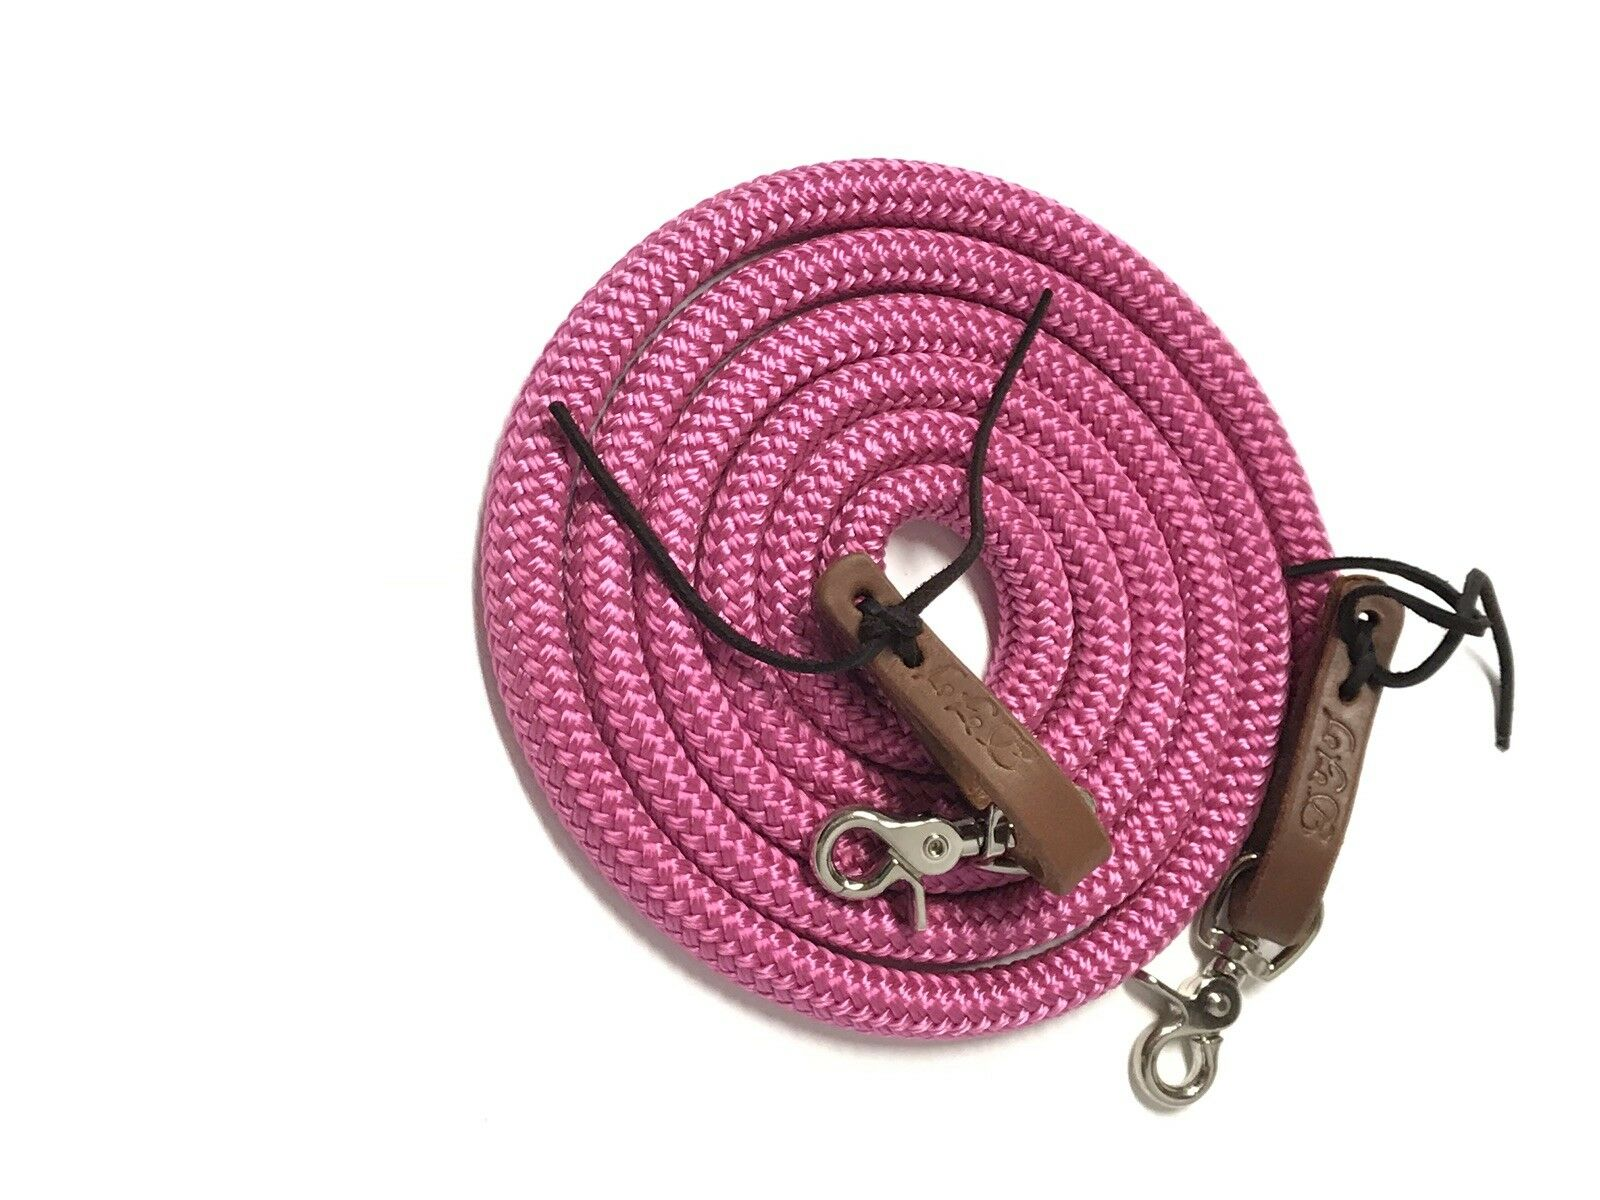 Fus a yacht rope reins  water loops fushia with trigger snaps  online cheap